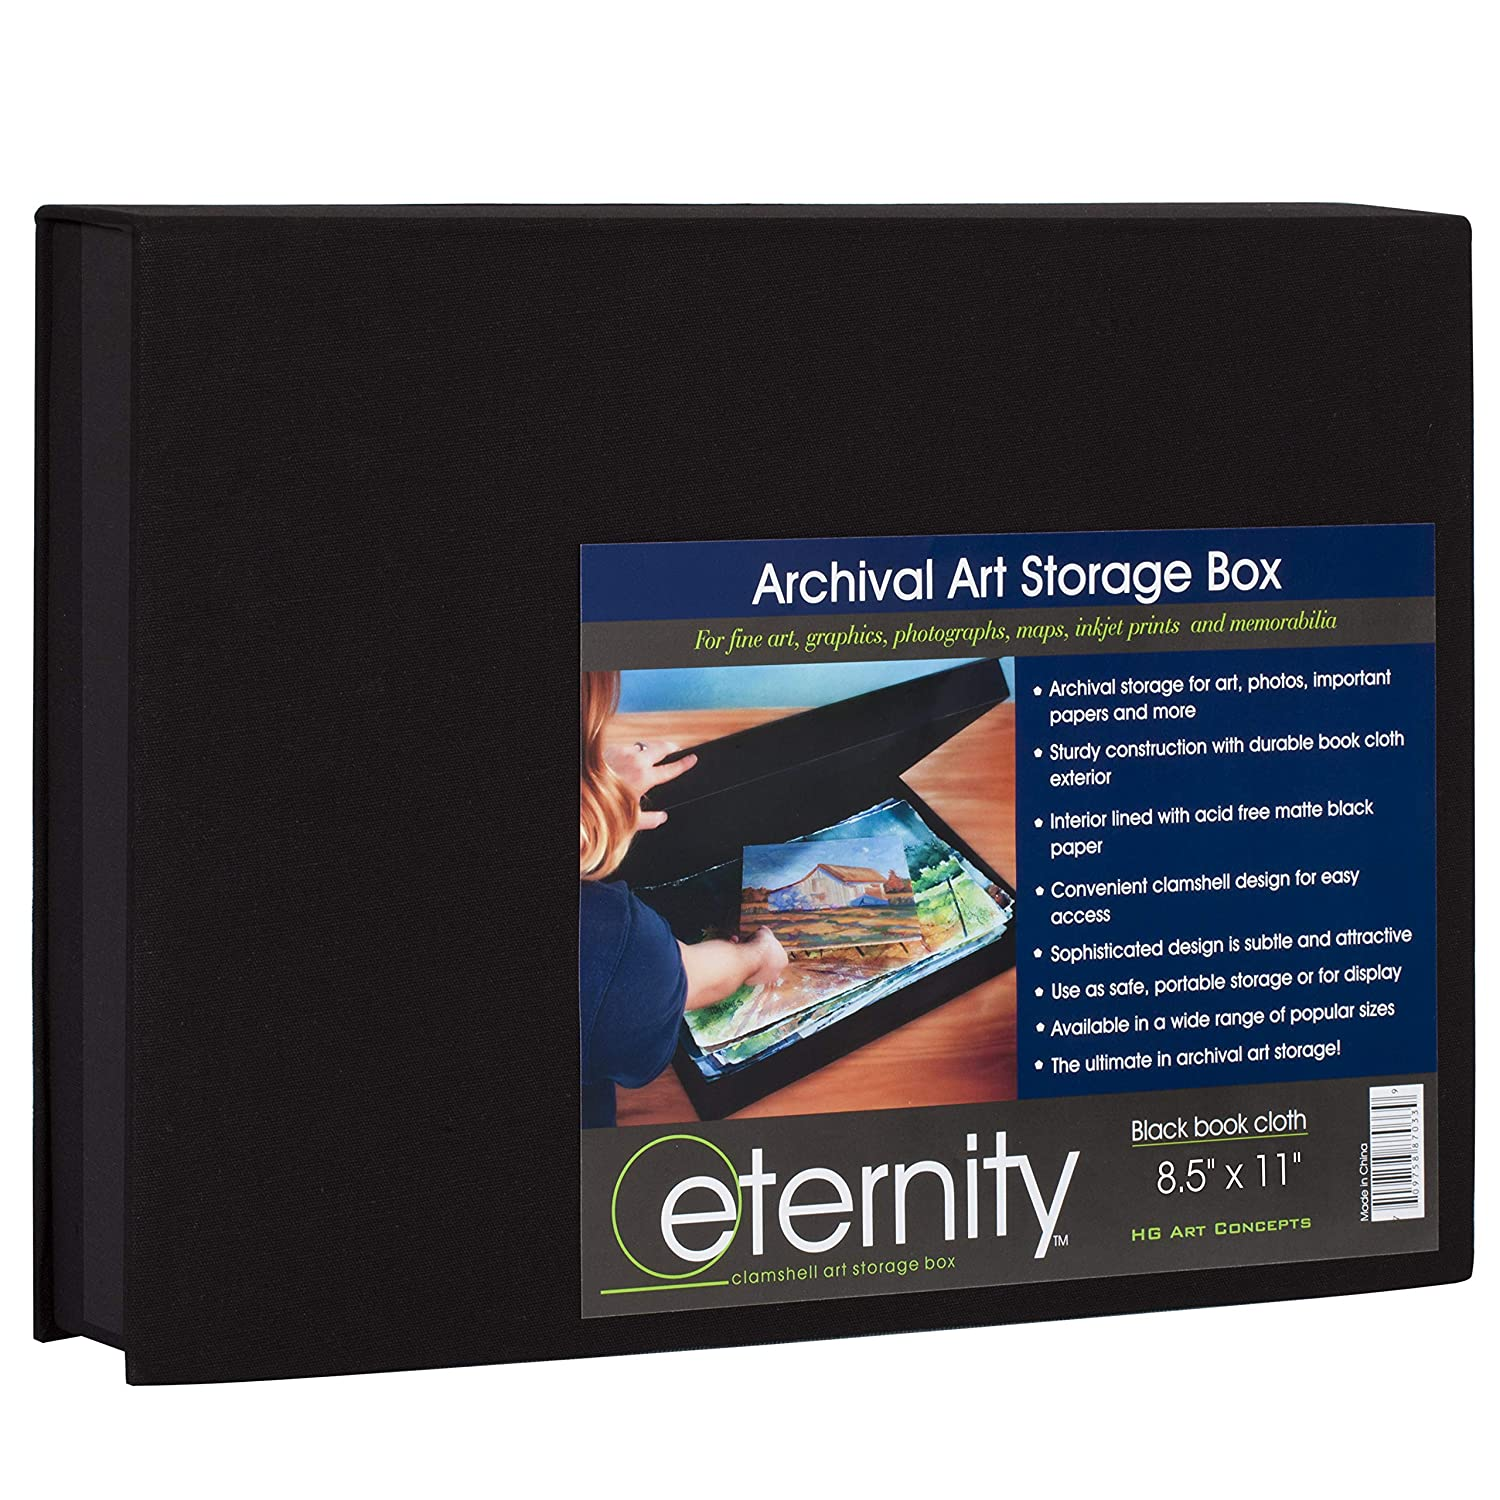 HG Concepts Art Photo Storage Box Eternity Archival Clamshell Box for Storing Artwork Black - 8.5 x 11 Photos /& Documents Deluxe Acid-Free Sturdy /& Lined with Archival Paper